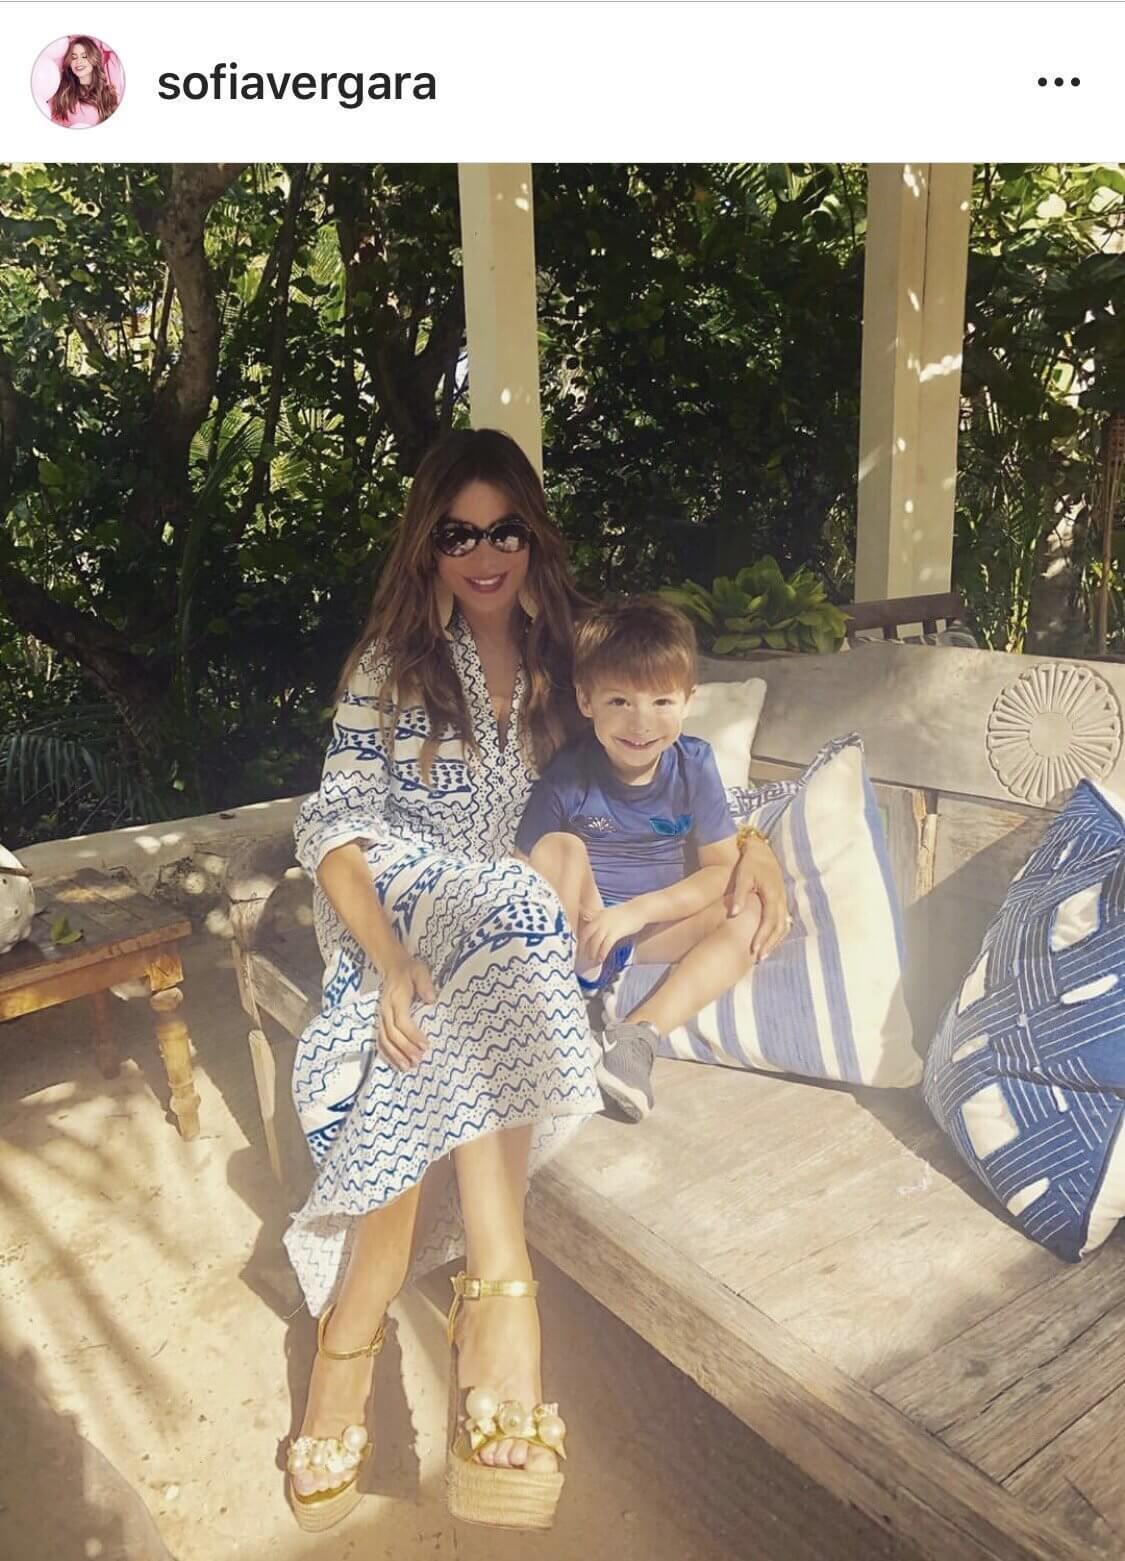 SOFIA VERGARA wearing our 'Guadeloupe' wedges on Christmas Eve